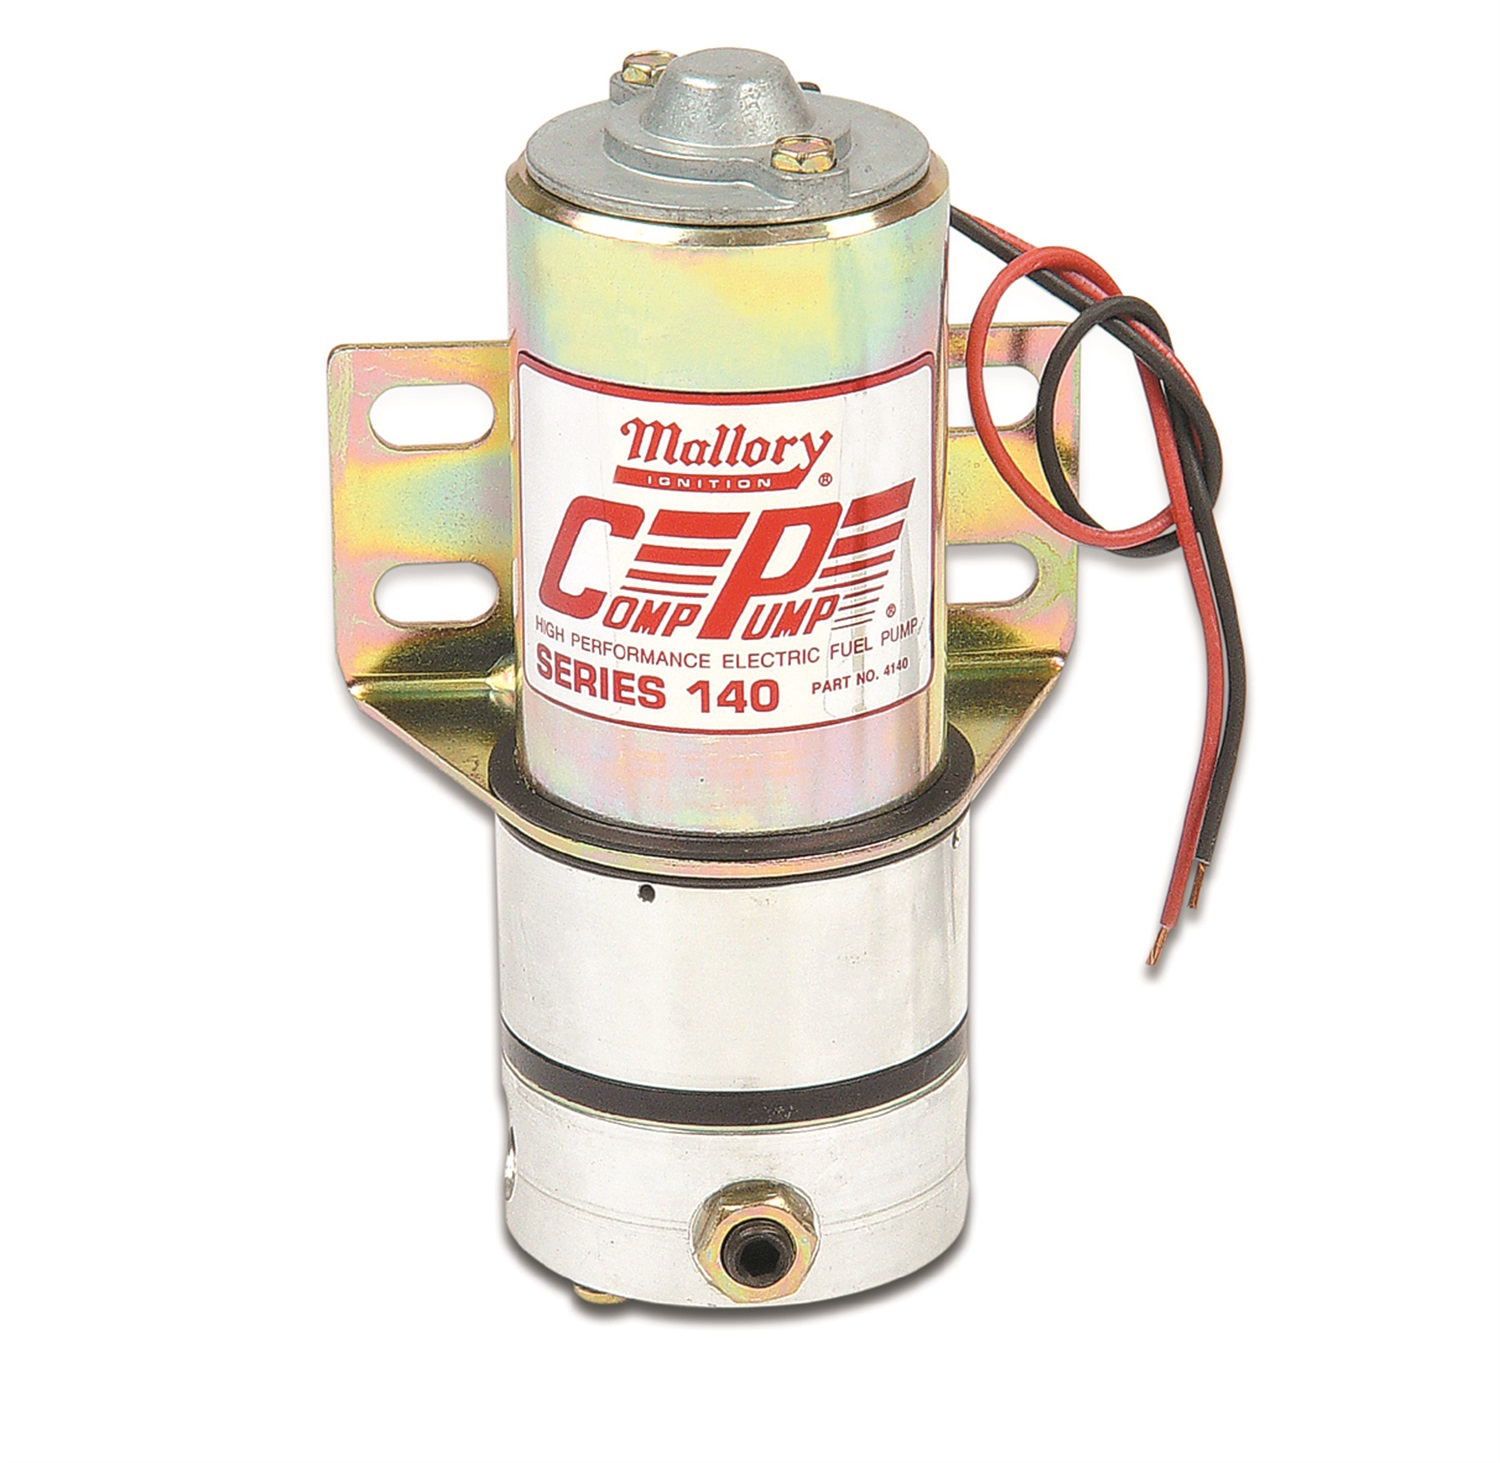 hight resolution of mallory electric fuel pumps